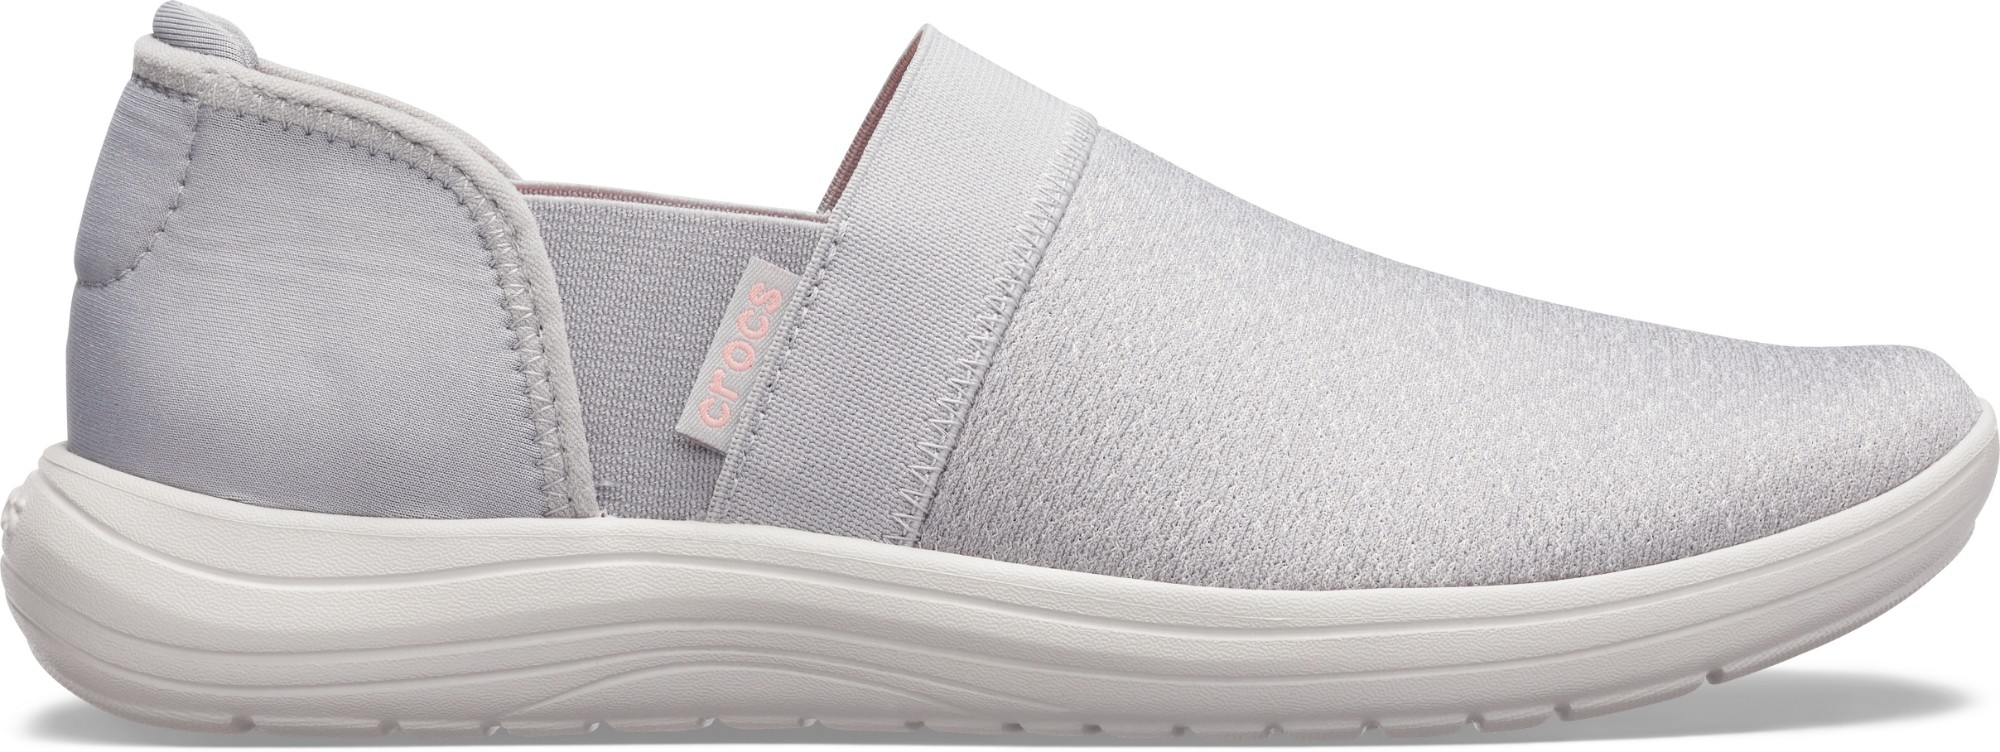 Crocs™ Reviva Slip-On Women's Light Grey/Pearl White 35